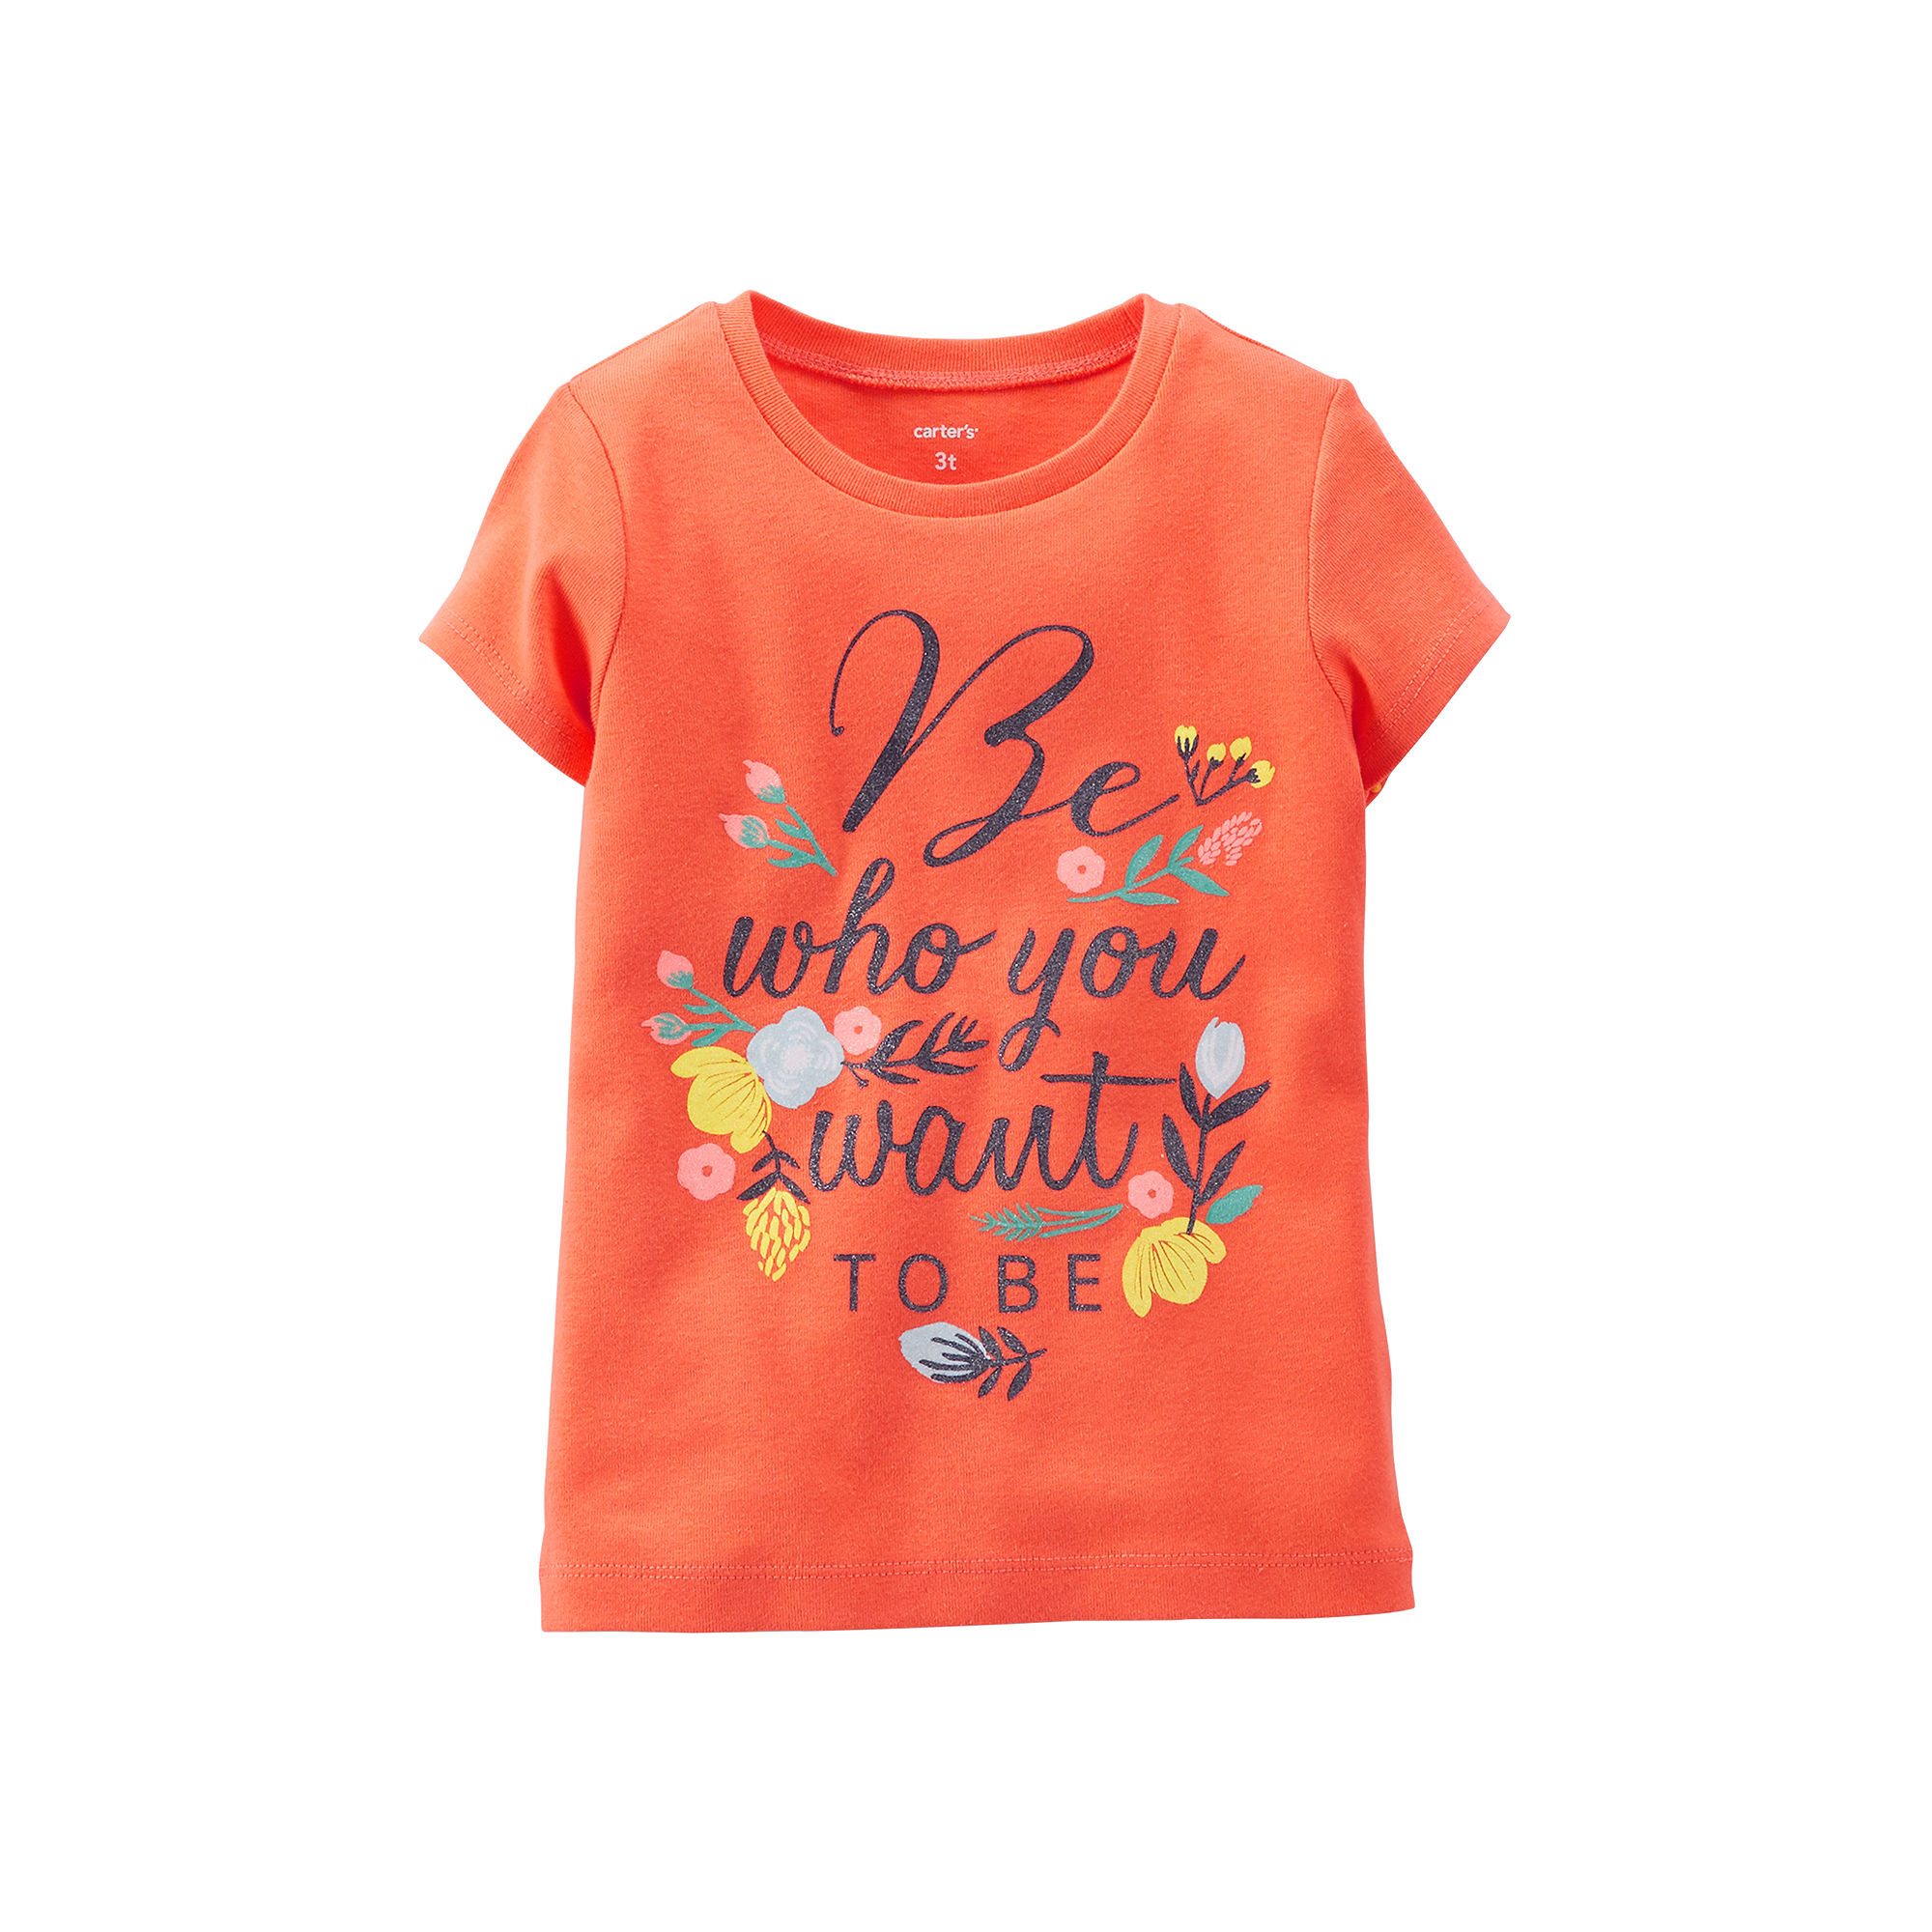 1729d0e38 UPC 888510527268 - Carters Graphic Tee - Girls Toddler 2t-5t ...